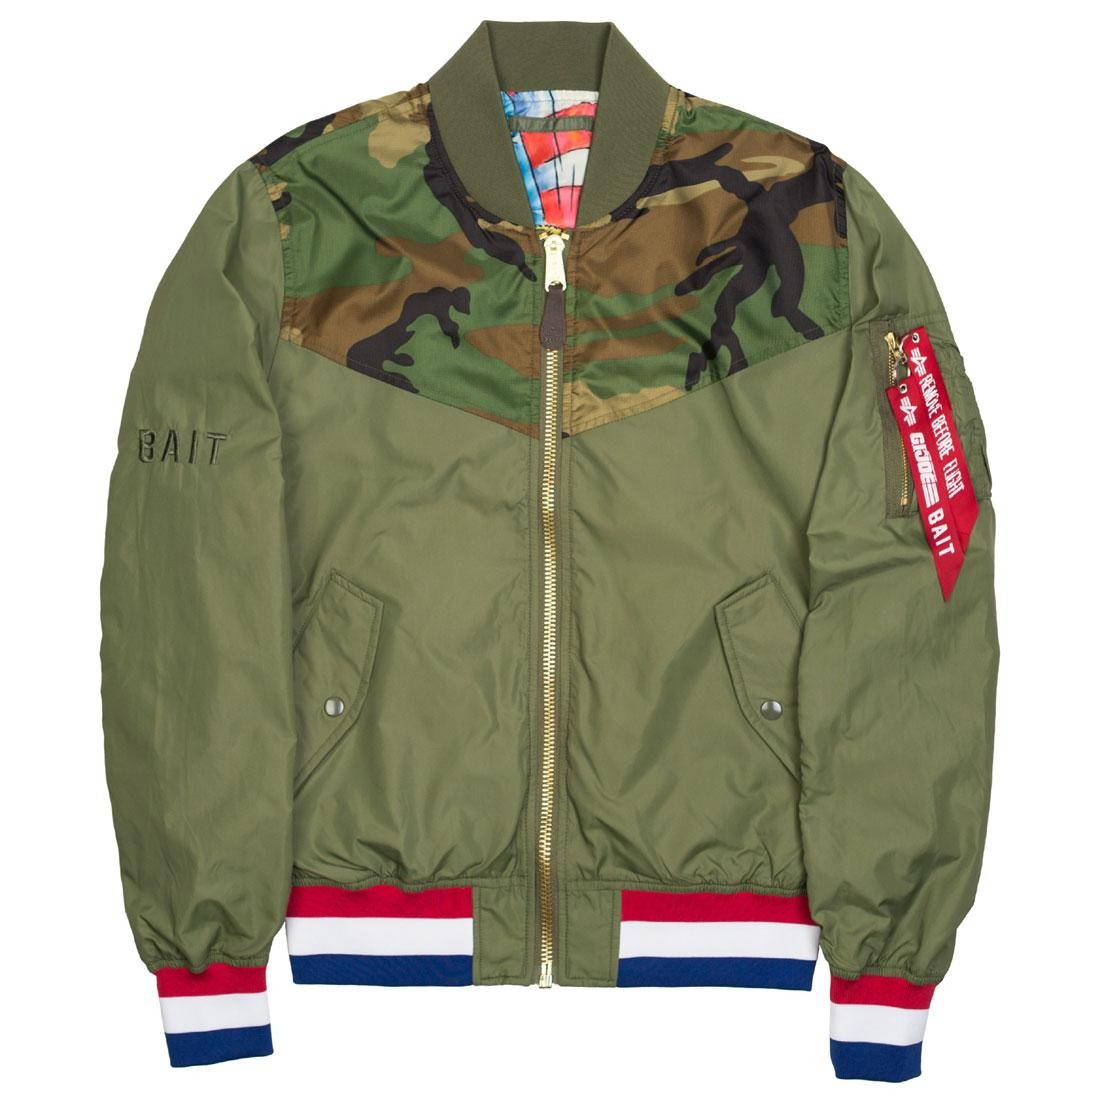 size 40 3c454 13be4 BAIT x Alpha Industries x GI JOE Men L2B Scout Military Reversible Jacket  (green / olive)